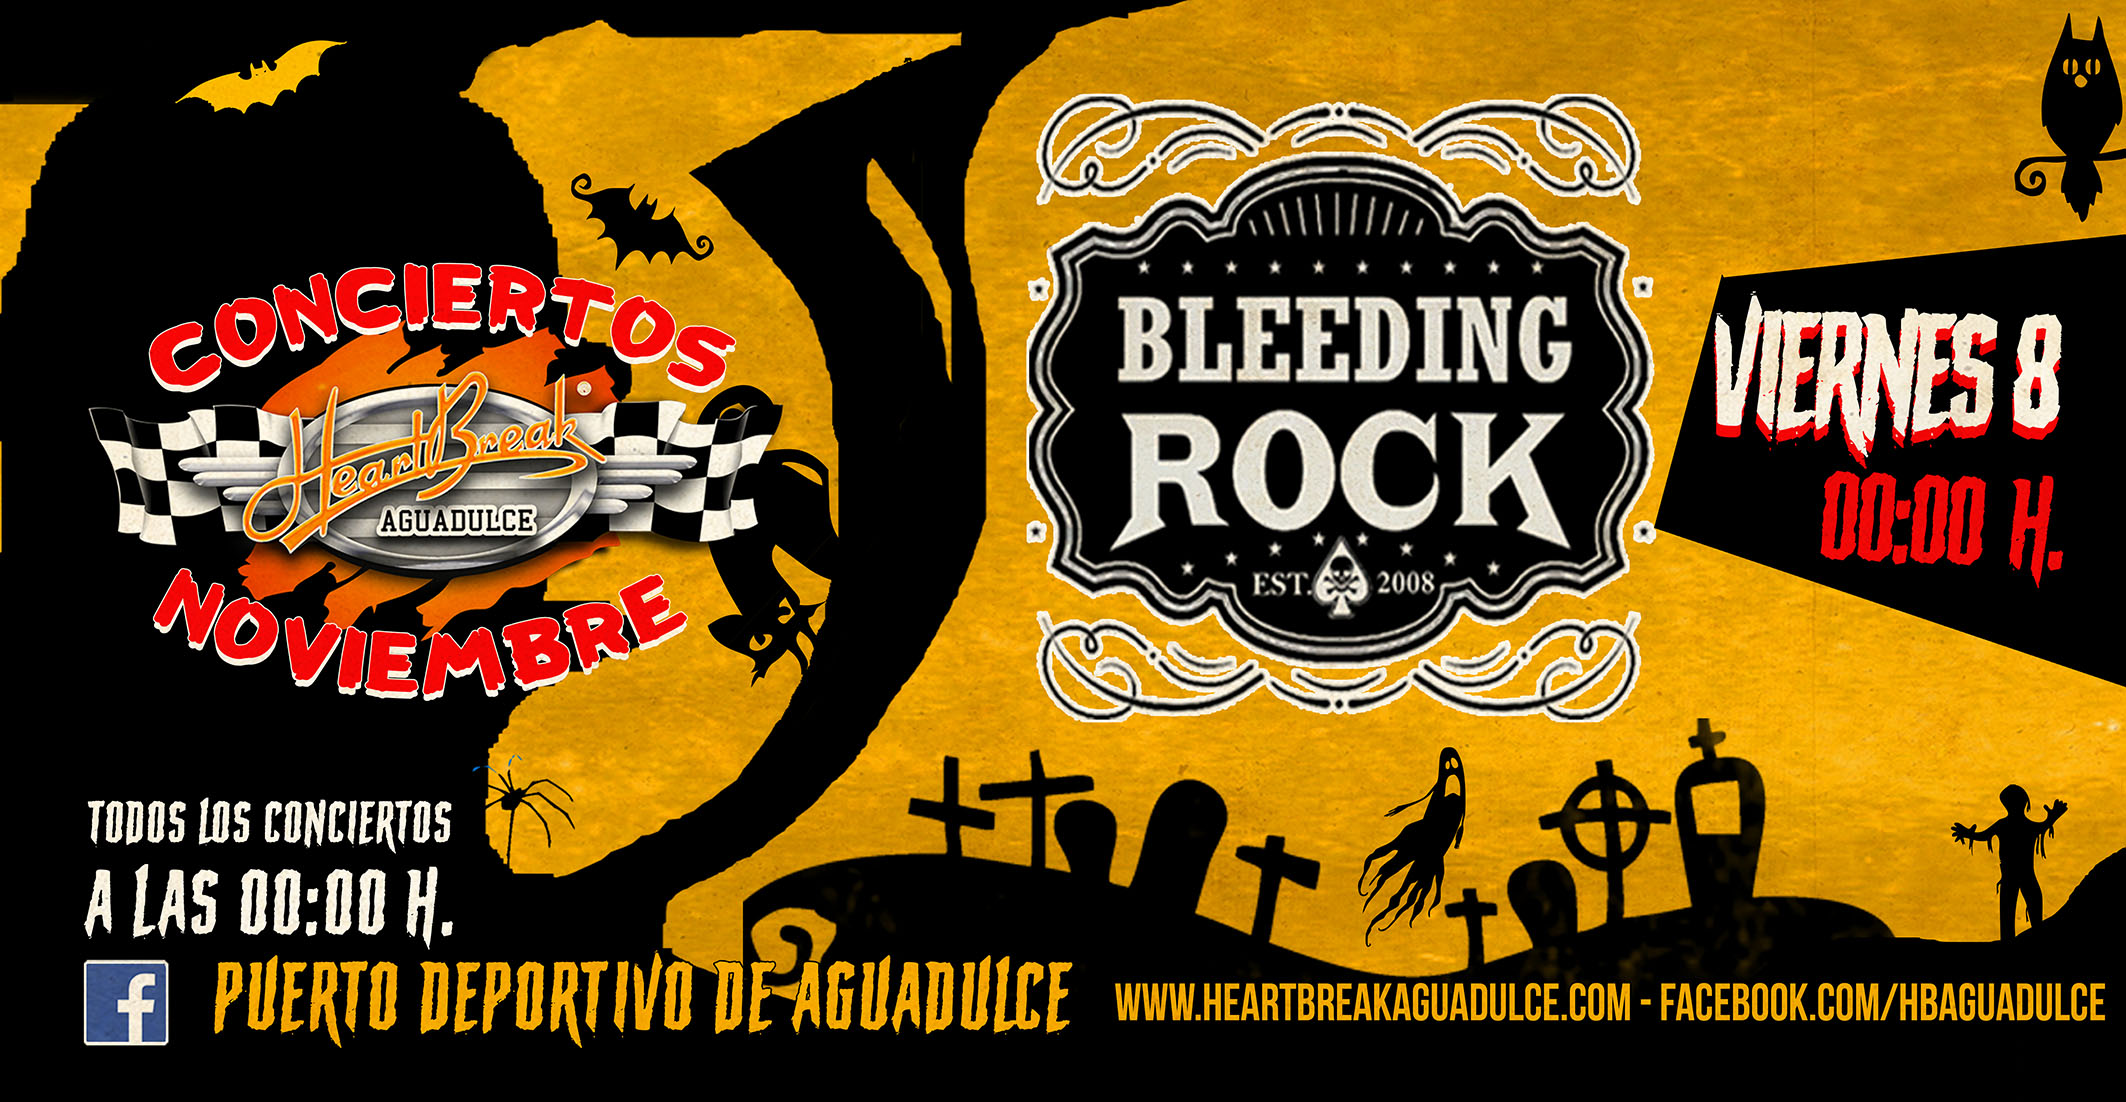 Concierto de bleeding rock